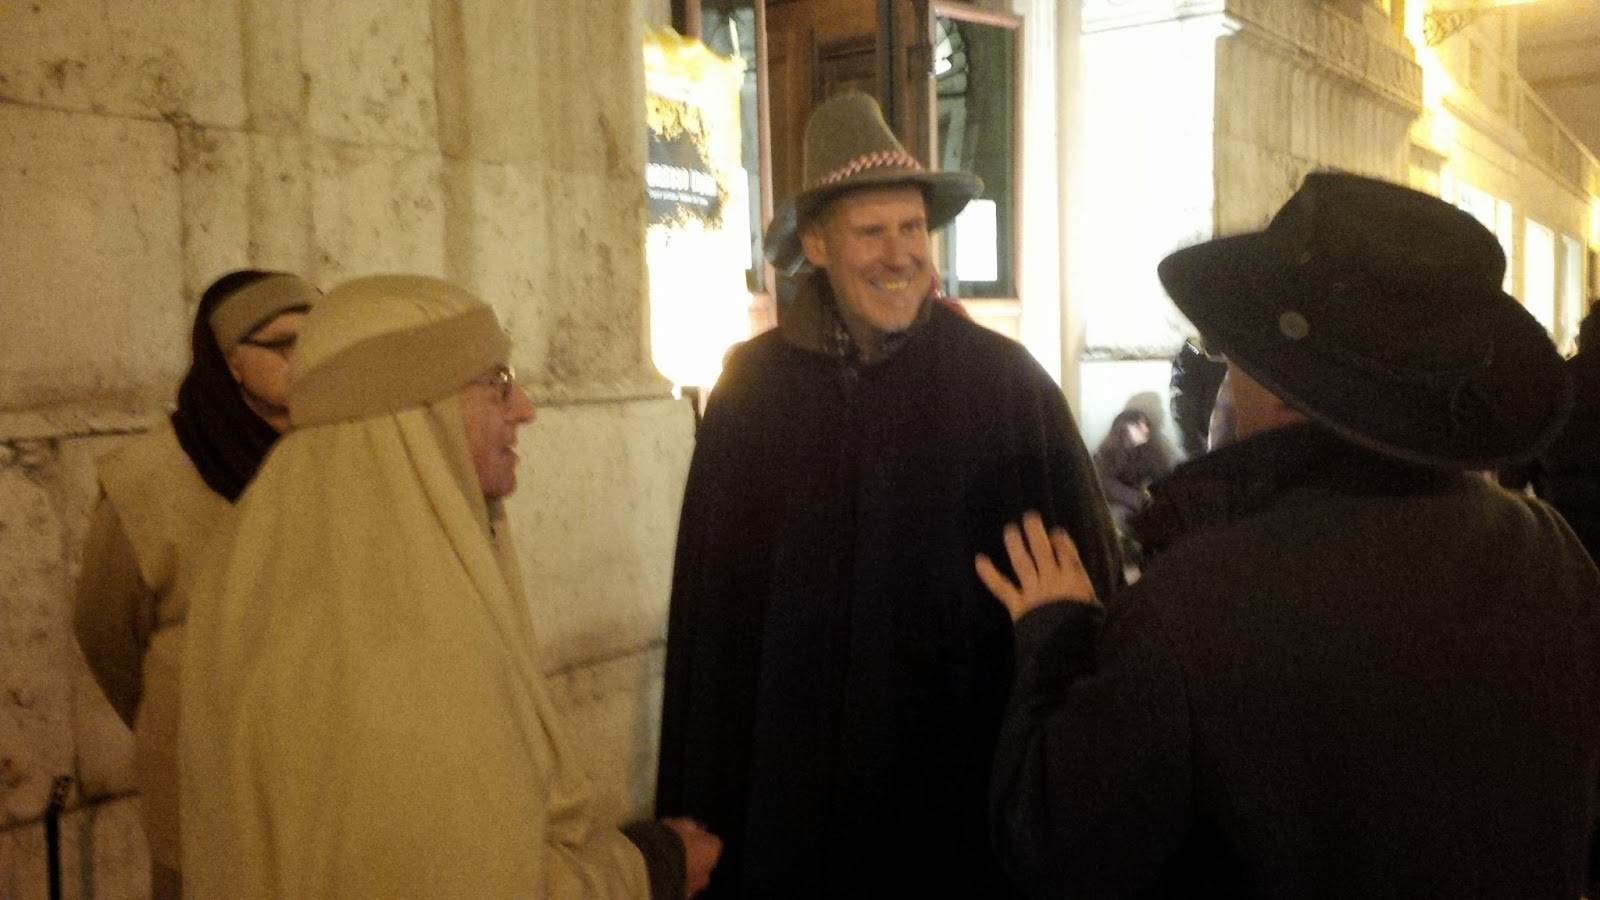 Comparing hats with some of the participants in the living Nativity Scene in Vicenza.